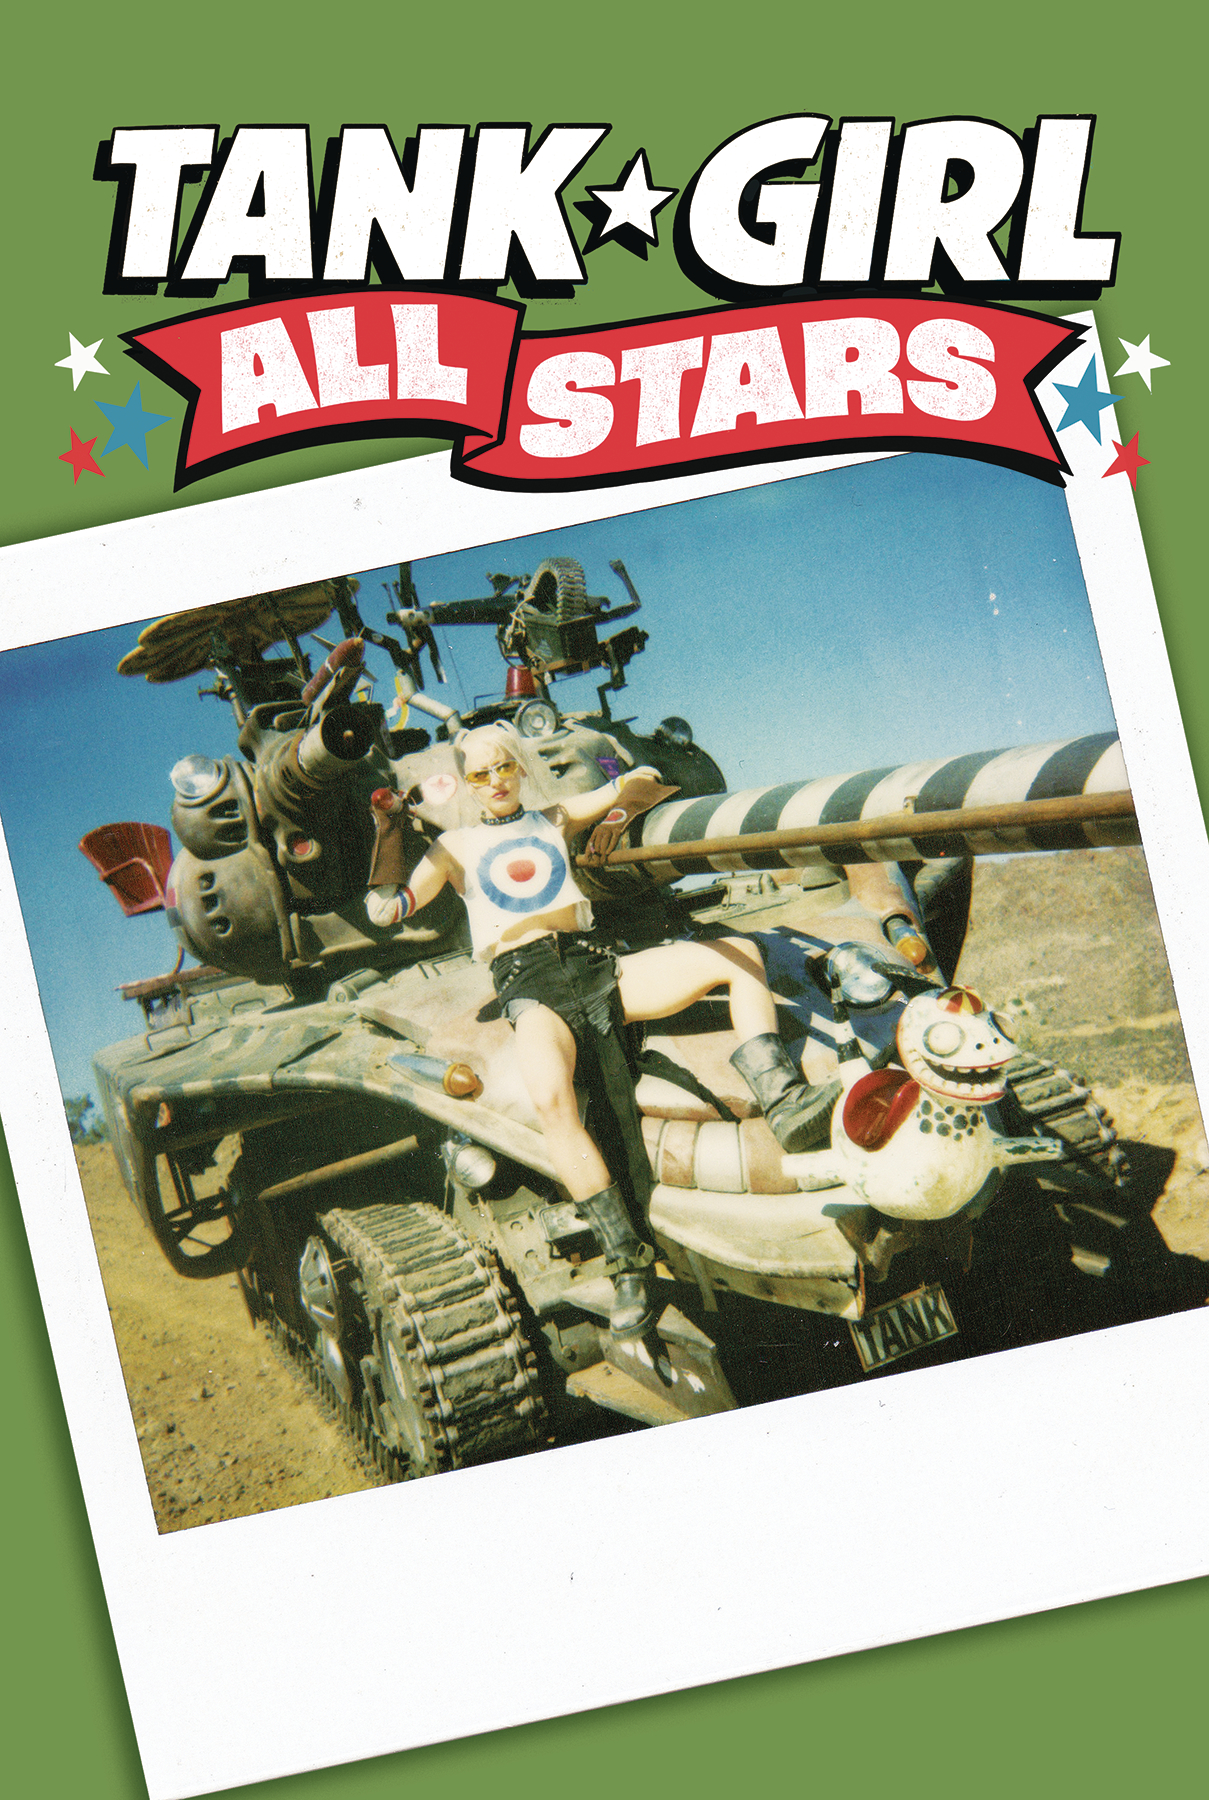 TANK GIRL ALL STARS #1 (OF 4) CVR D MARTIN PHOTO